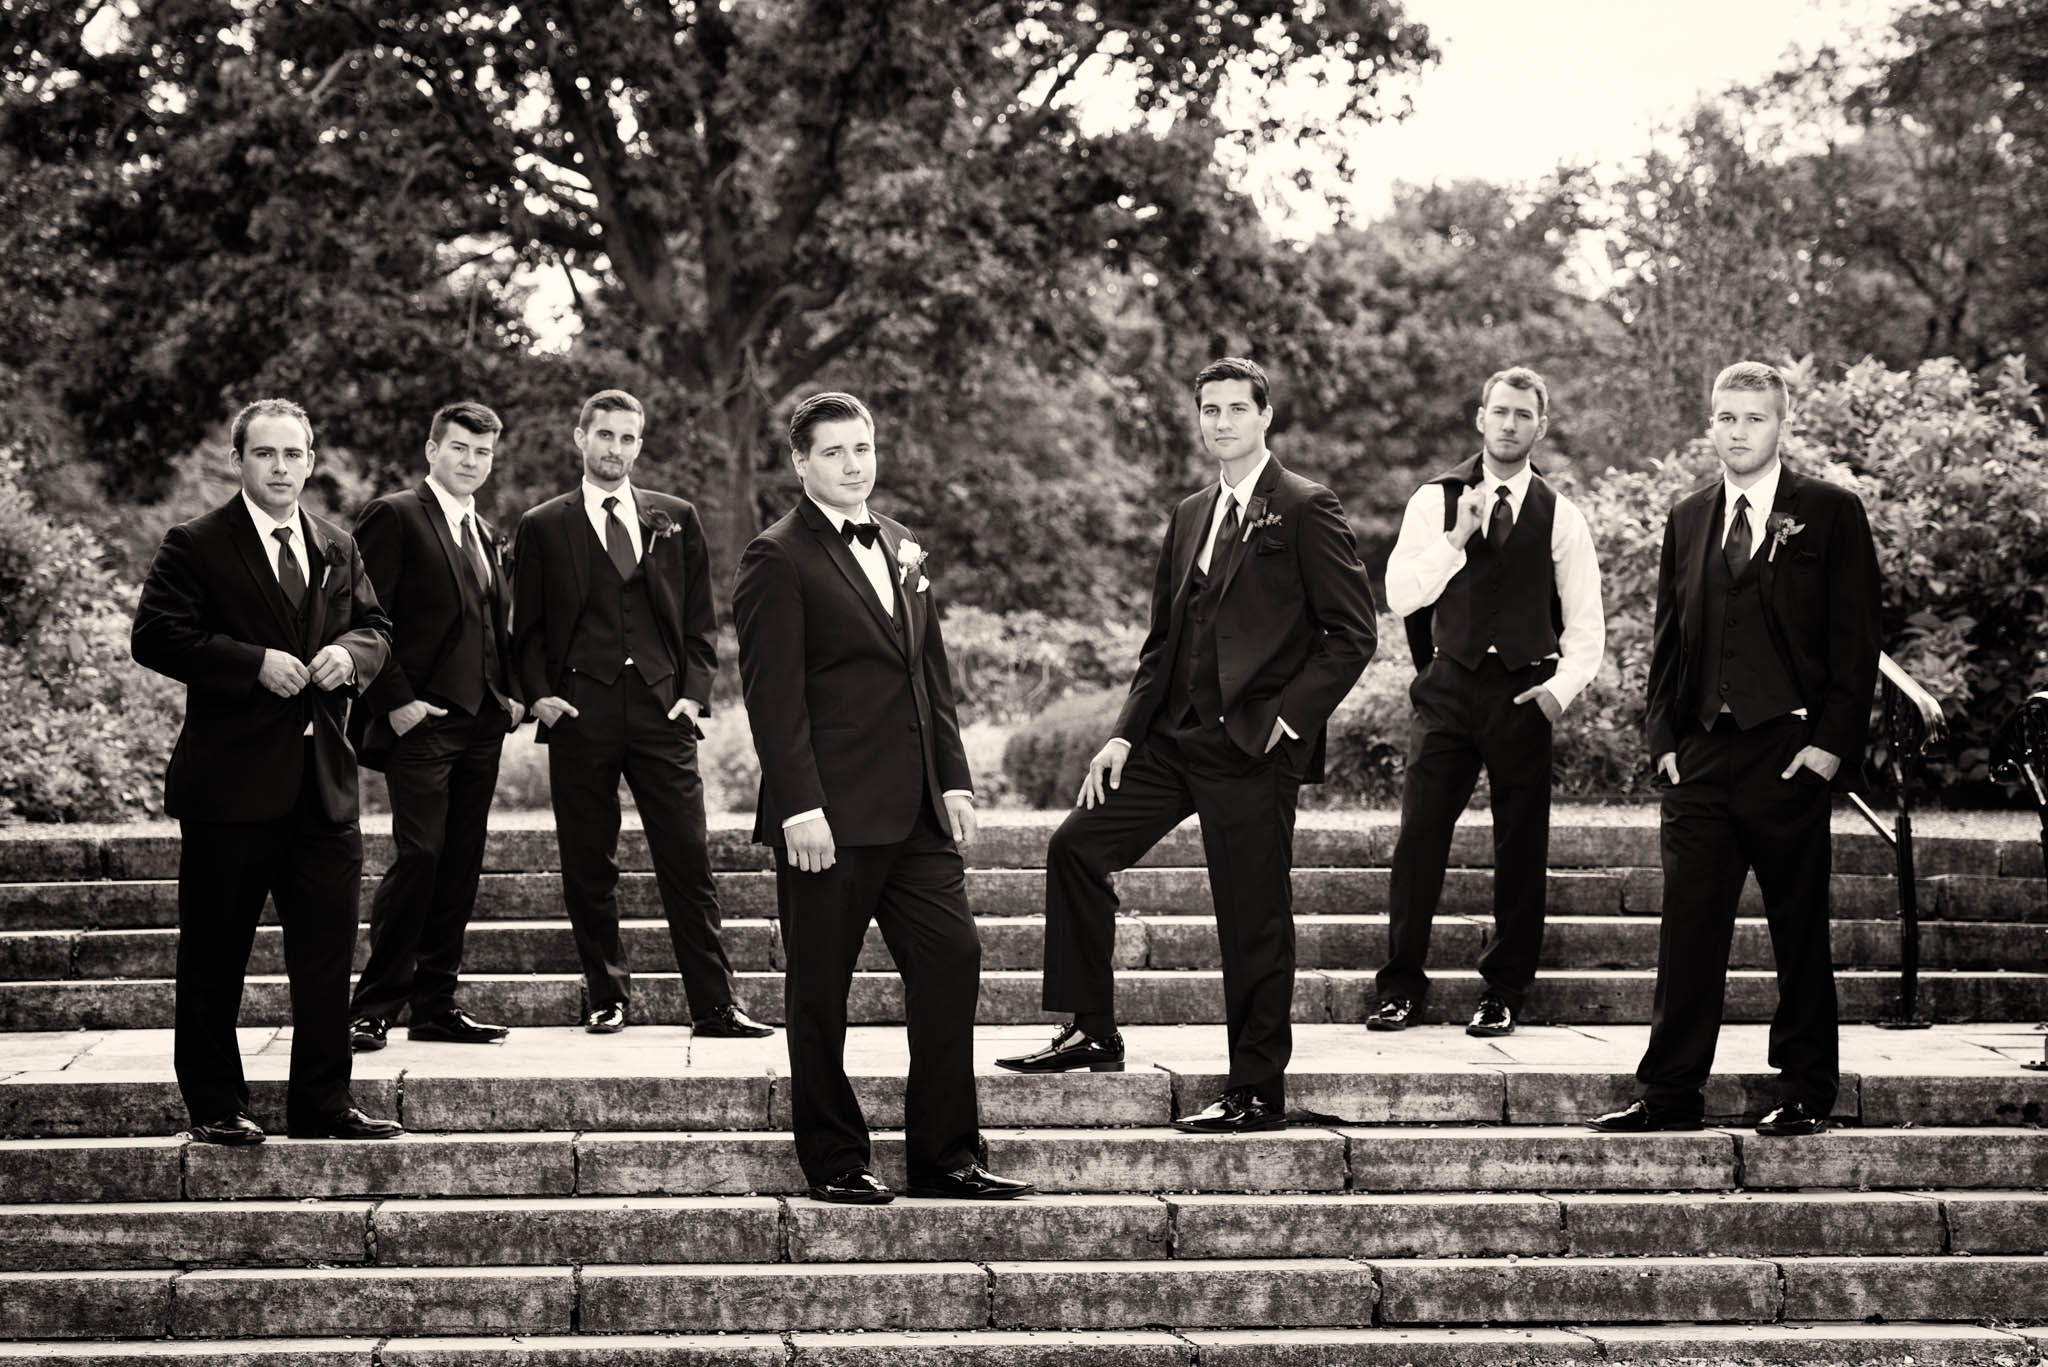 Groomsmen portrait at Cantigny Park